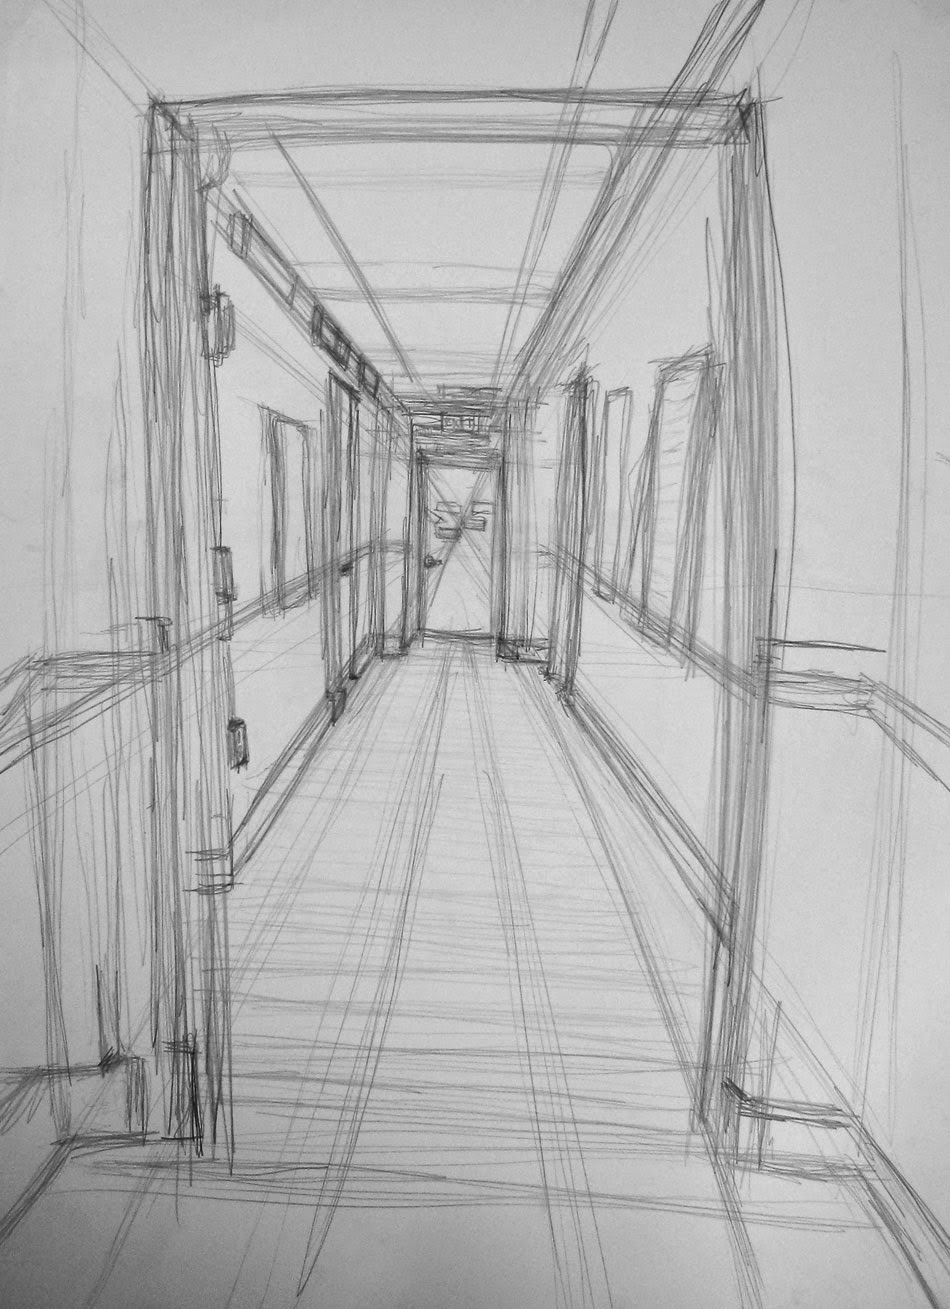 How To Draw In Linear Perspective